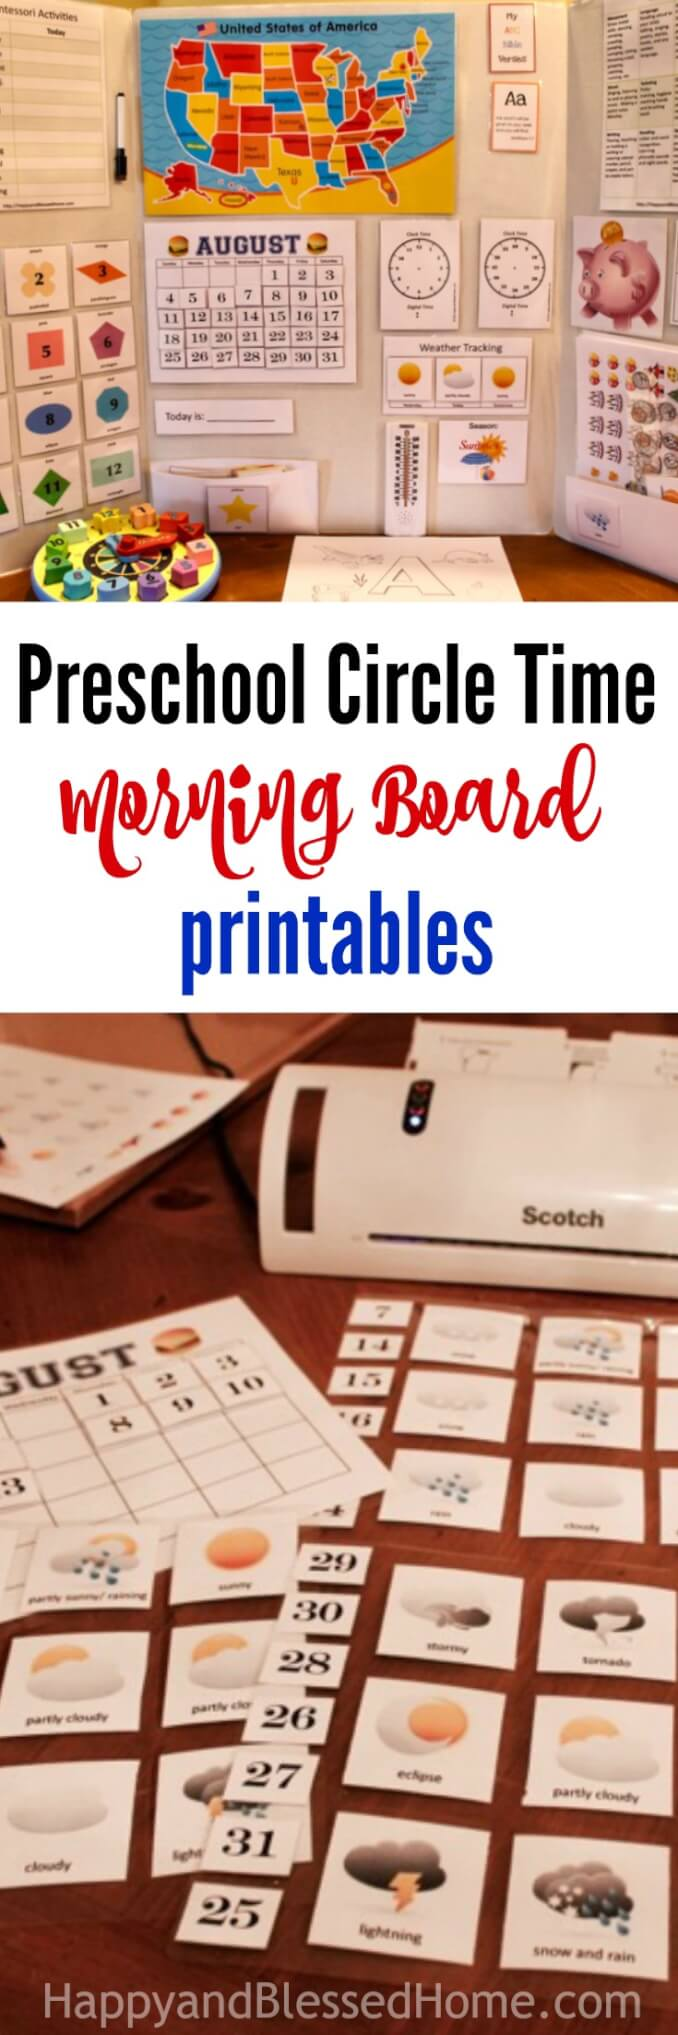 Preschool Circle Time Morning Board Printables